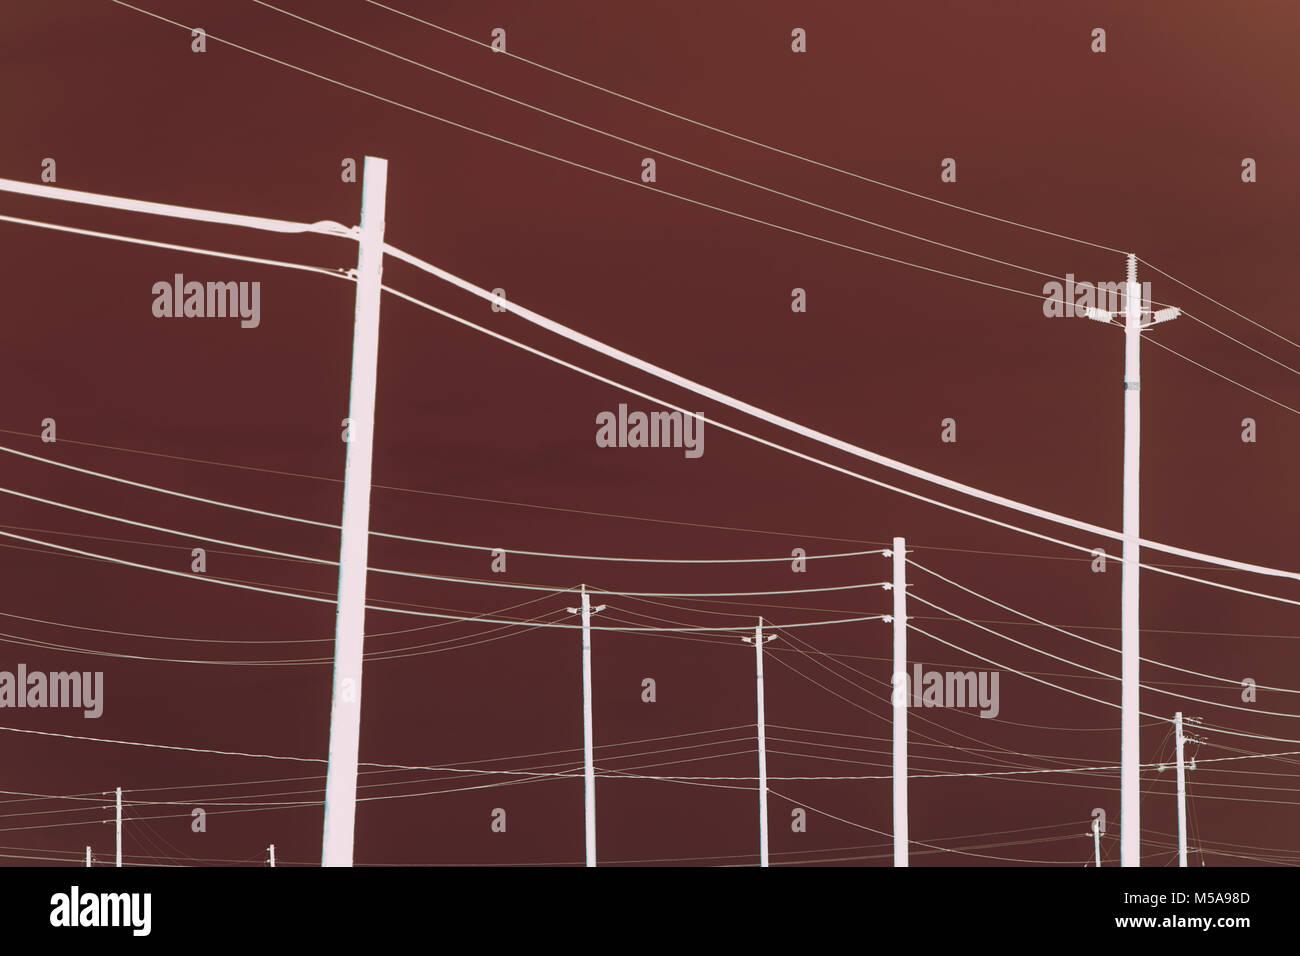 Abstract of power lines and telephone poles. - Stock Image